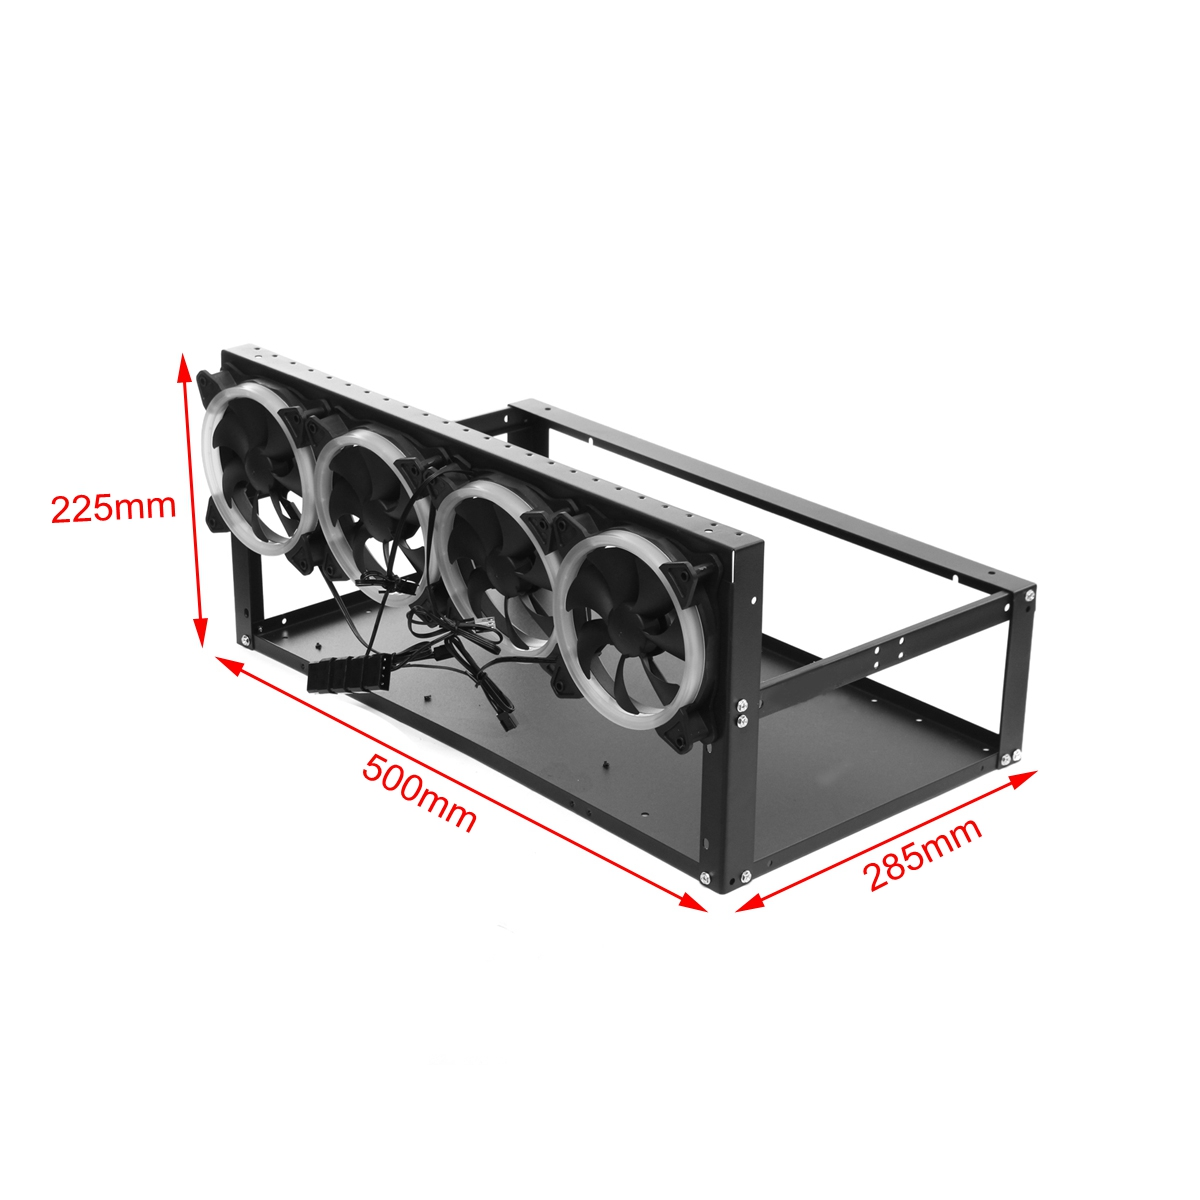 6 GPU Mining Machine Case Mining Rig Frame Aluminum Stackable Case with 4 Fans Open Air Frame